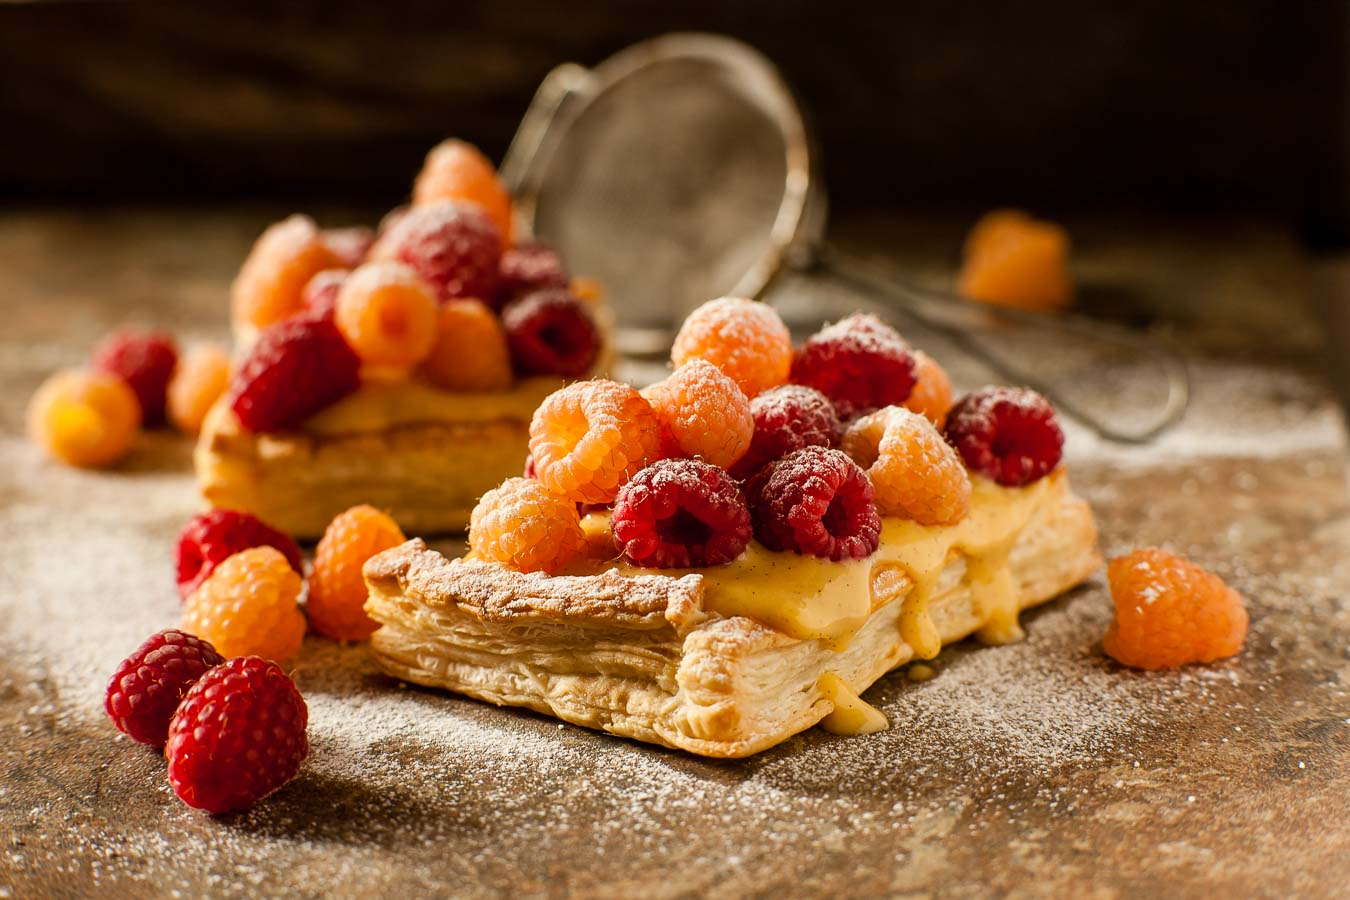 Puff pastry square topped with vanilla custard, with red and golden raspberries, dusted with icing sugar